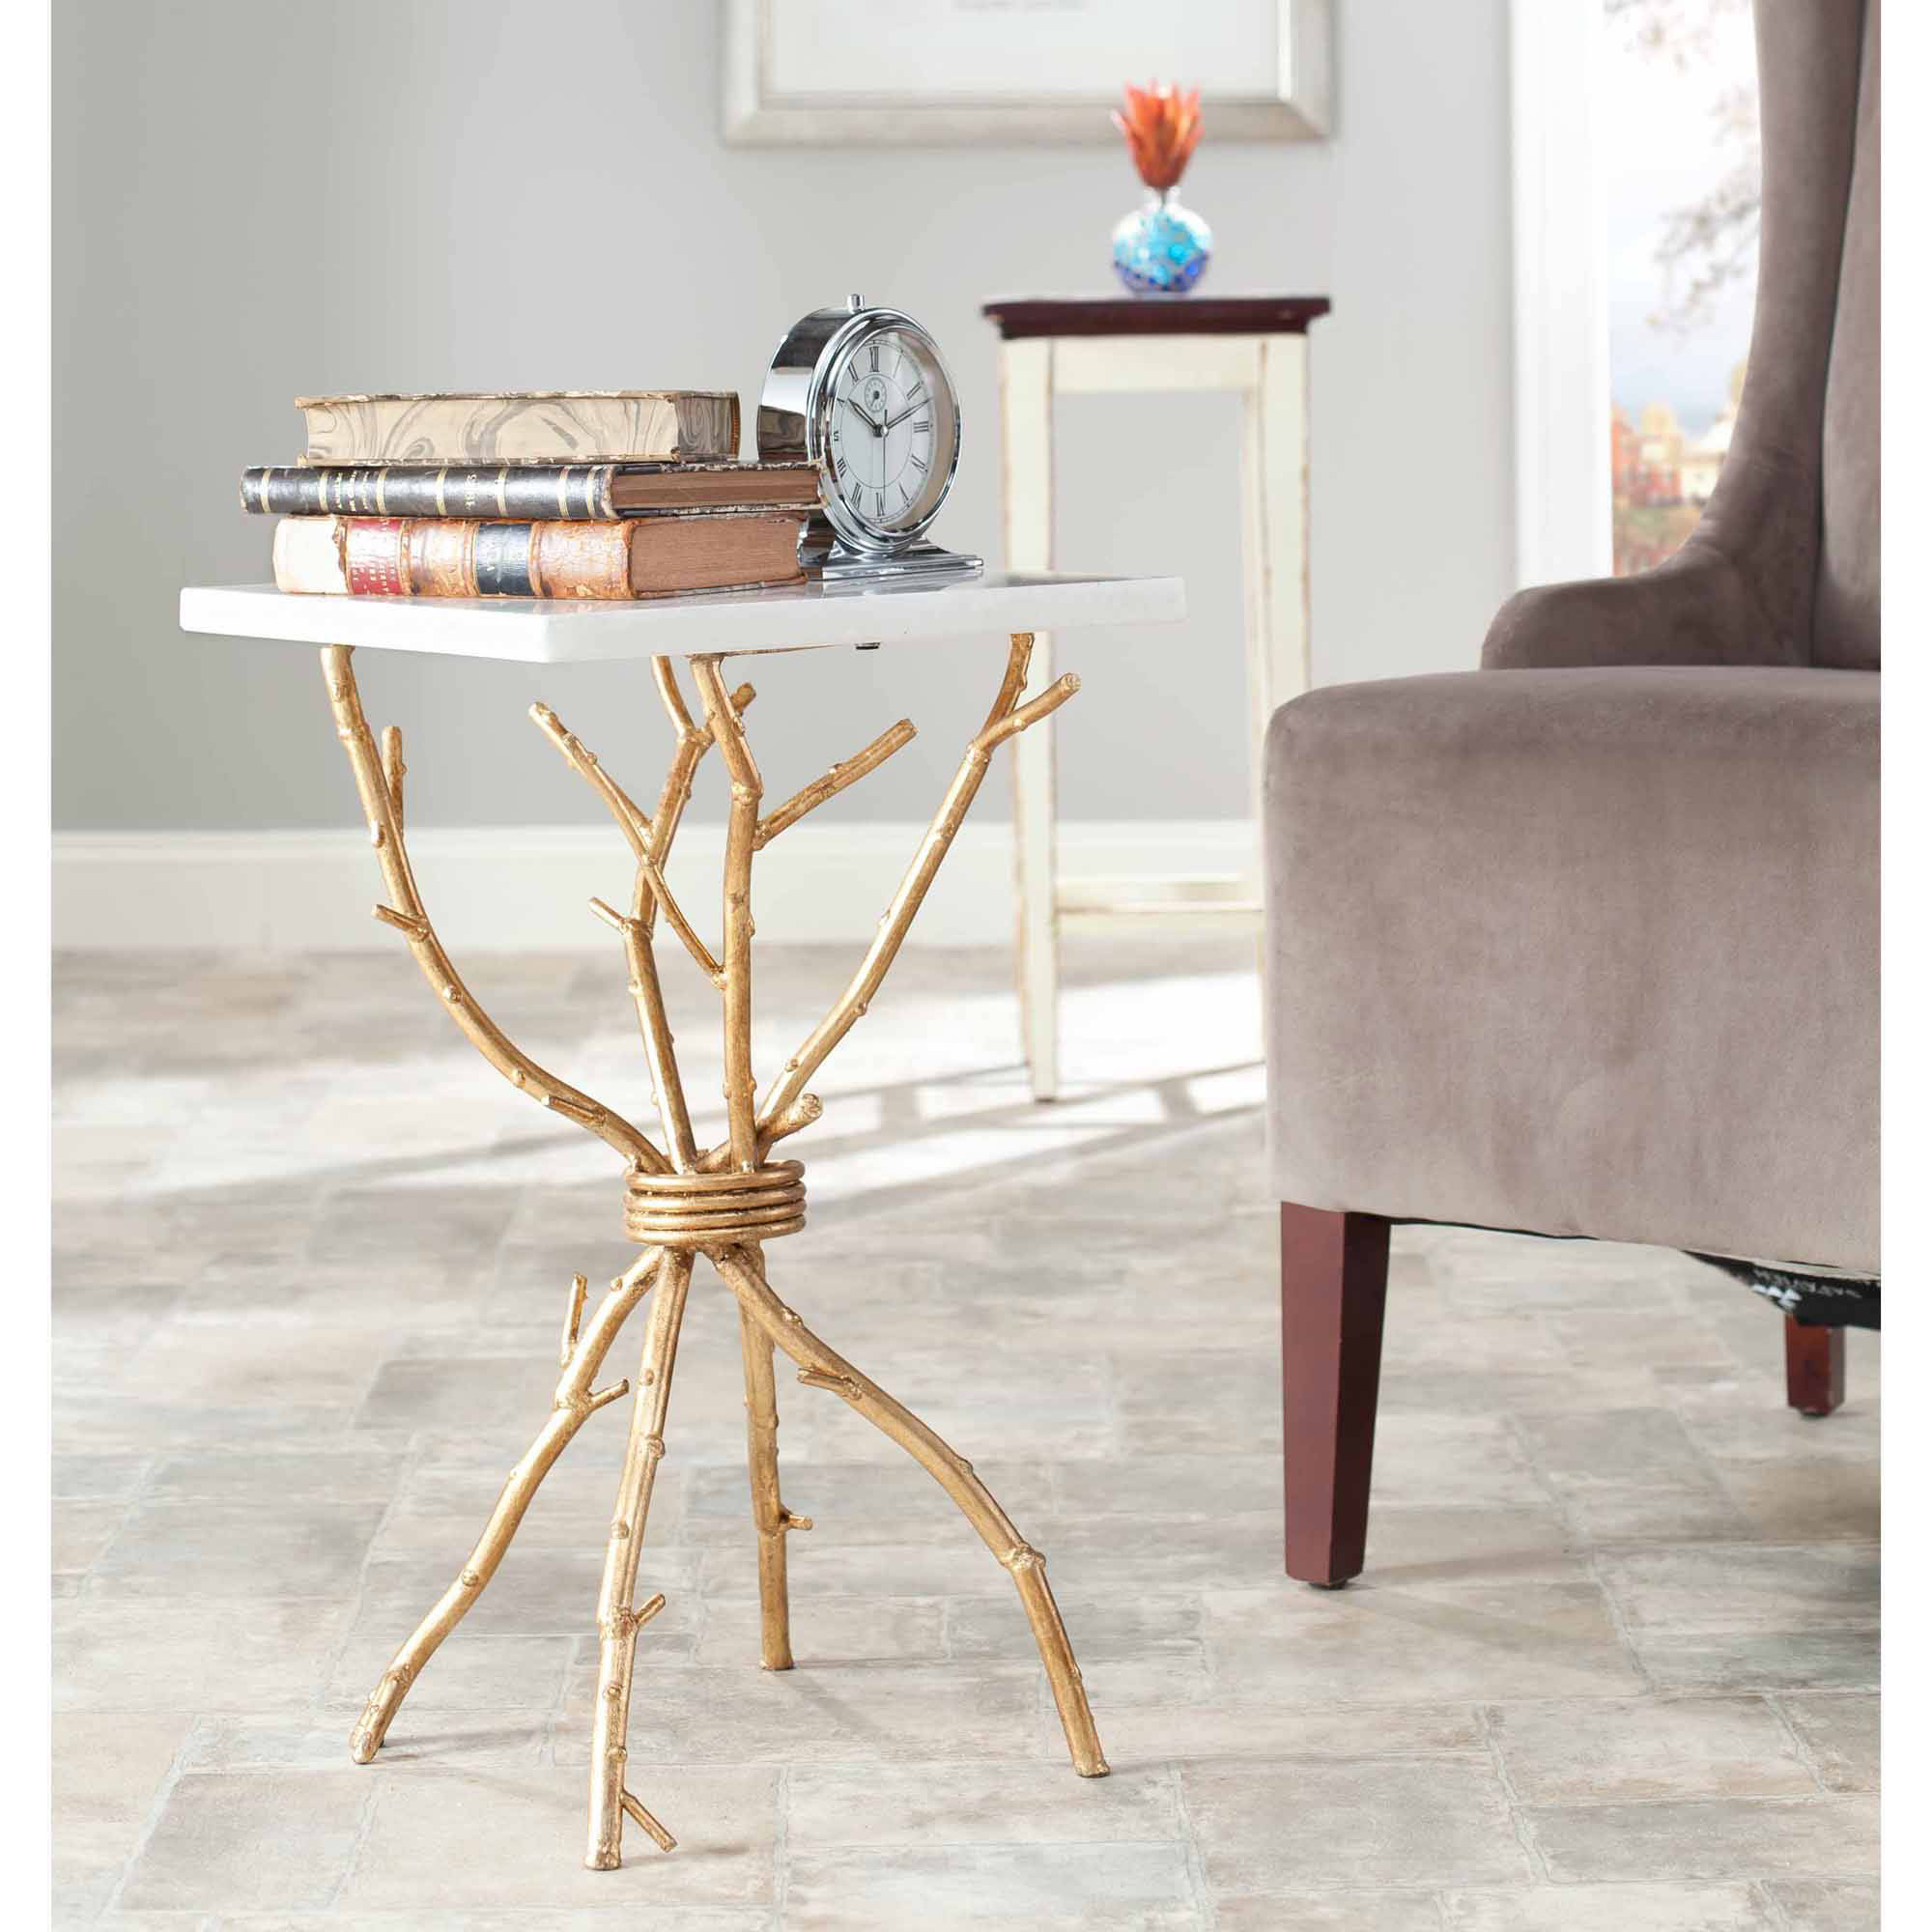 Safavieh Alexa Accent Table, Multiple Colors by Safavieh